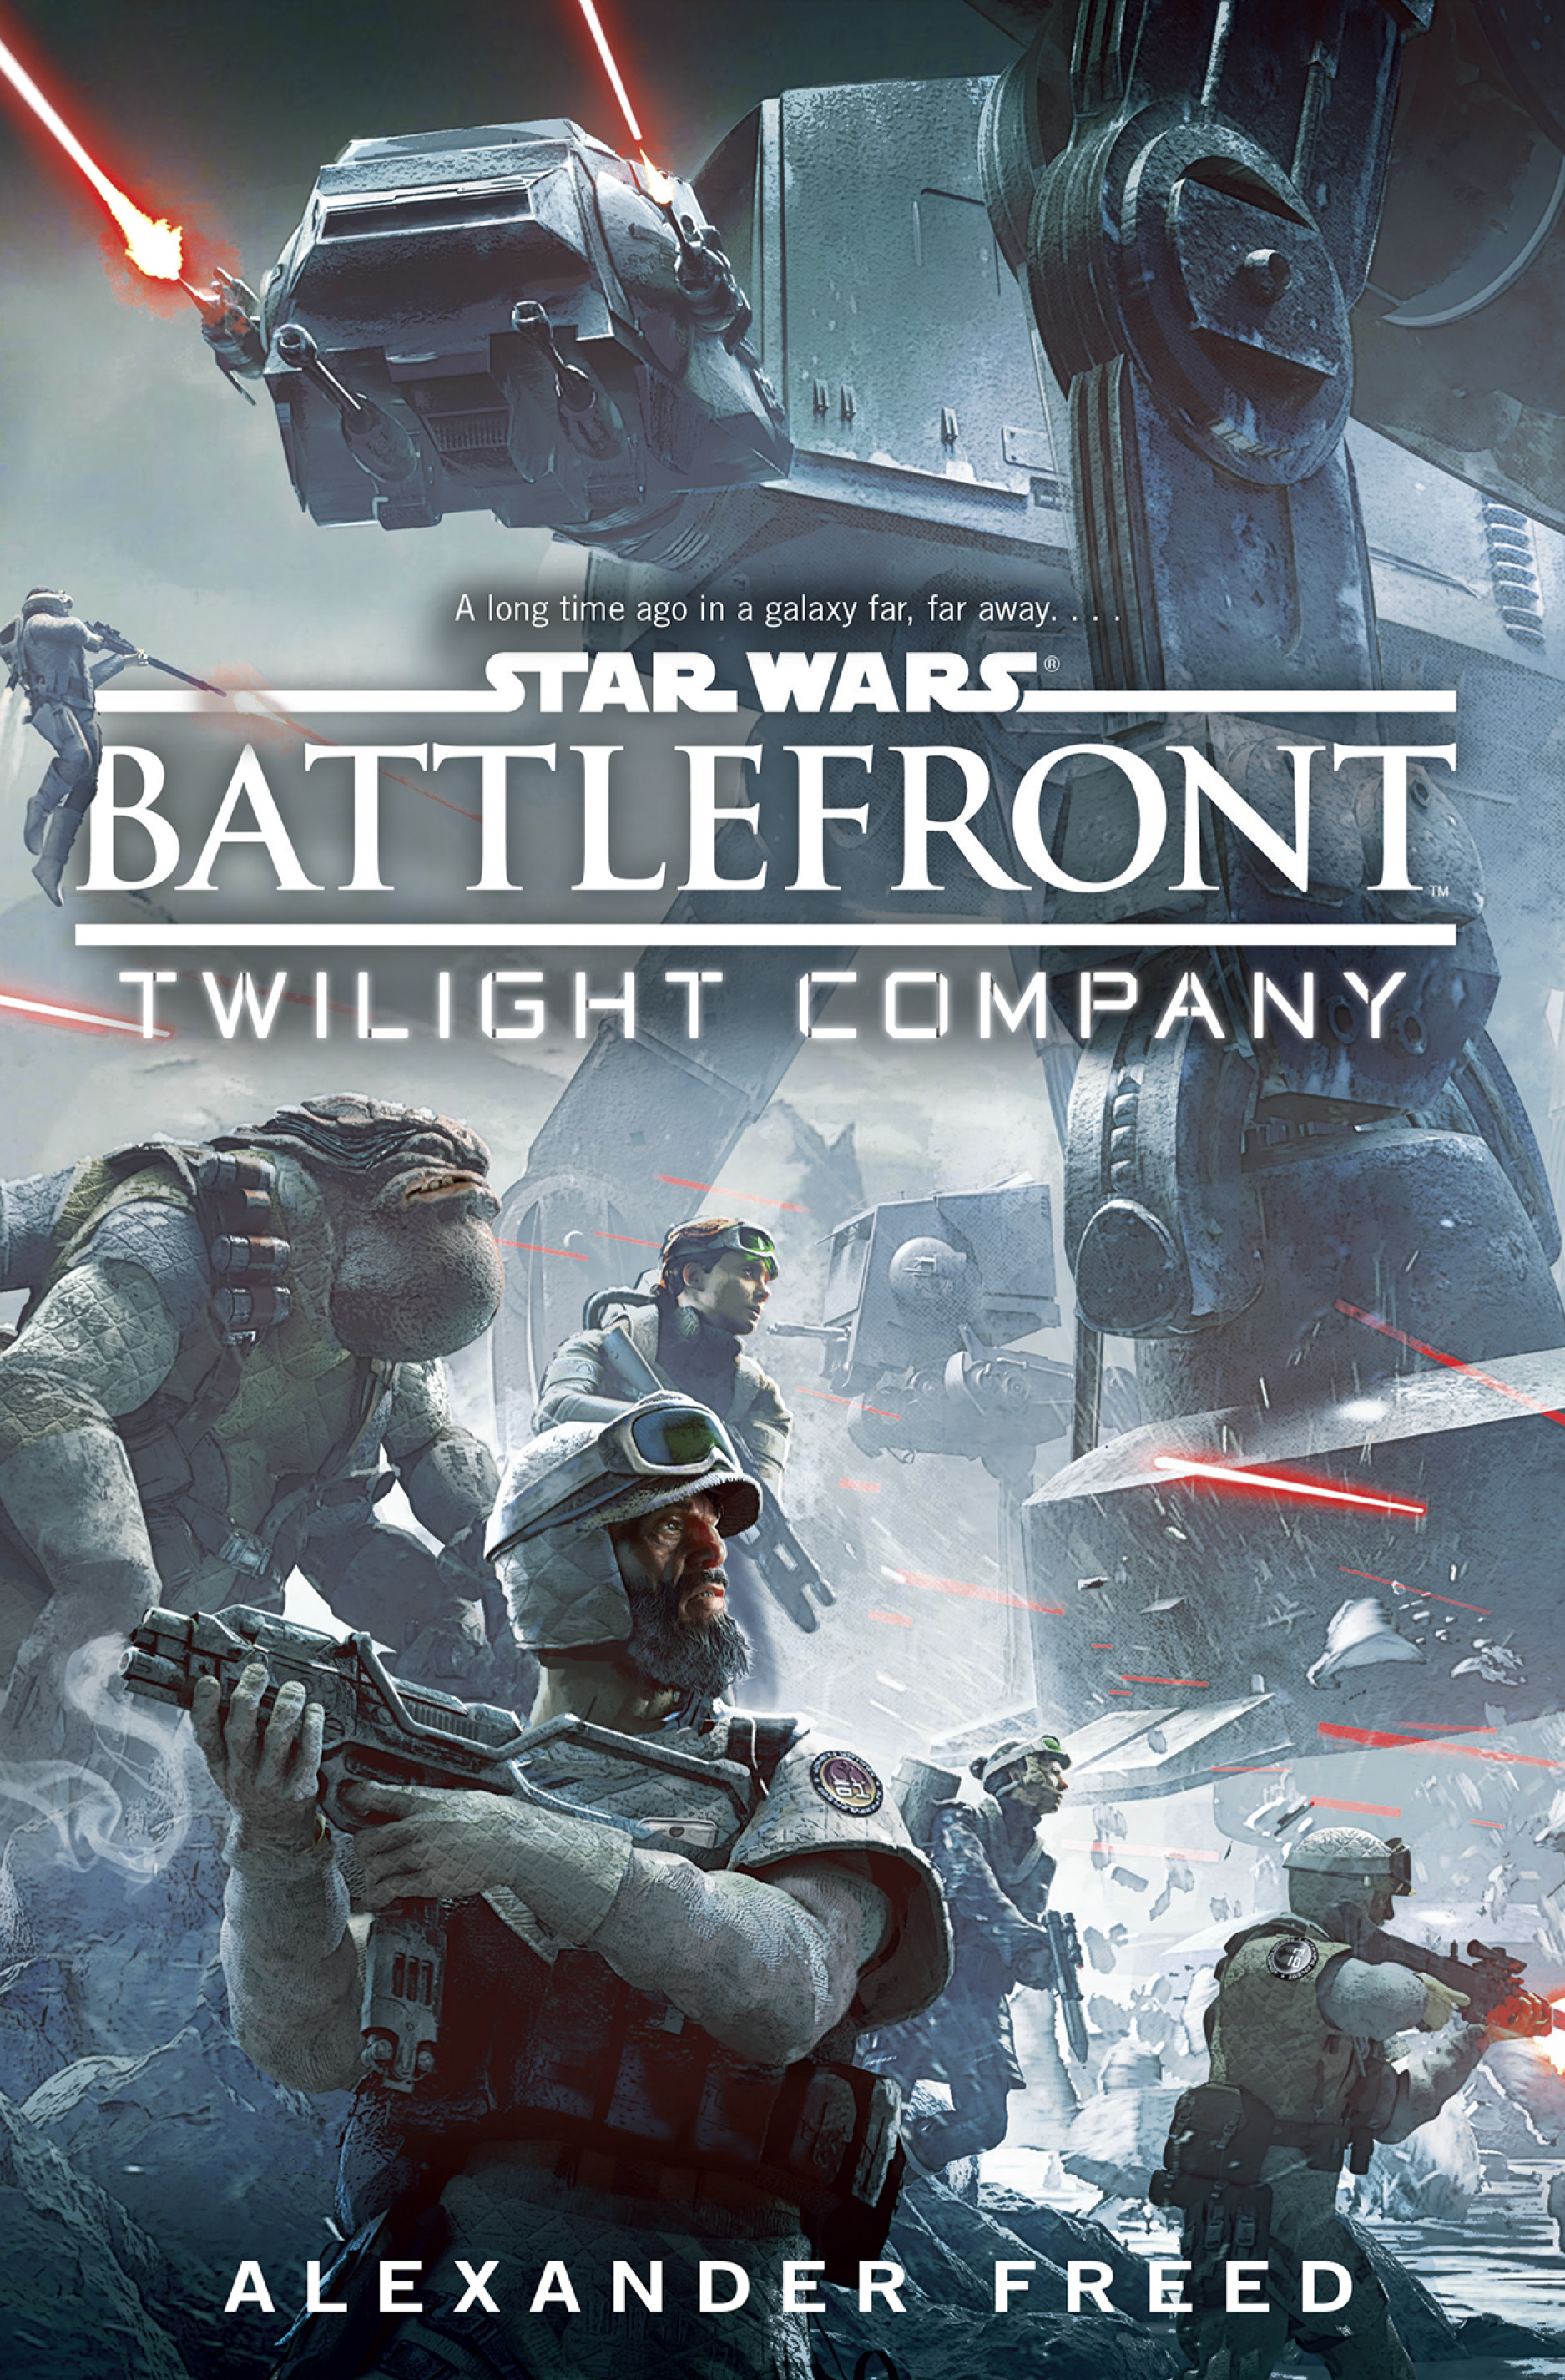 Star Wars Battlefront Twilight Company Novel Coming In November Starwars Com